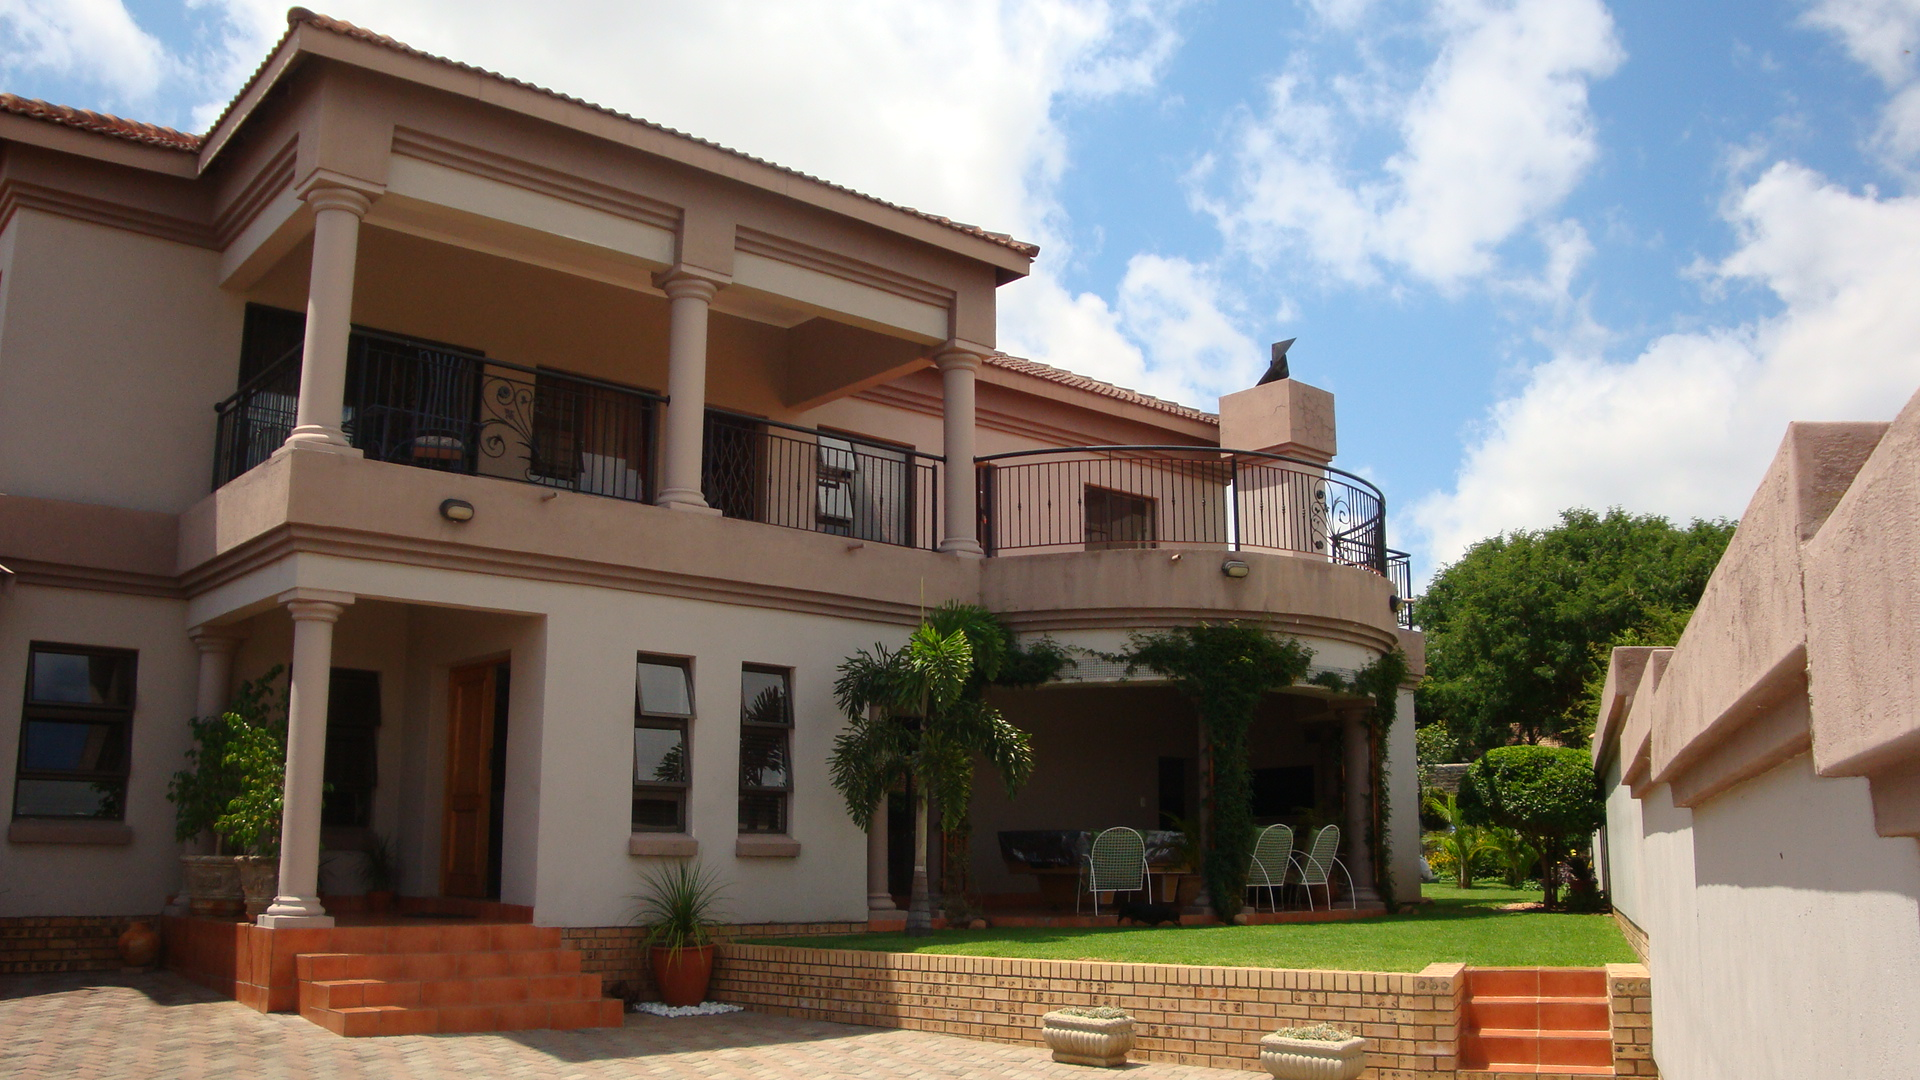 5 Bedroom House For Sale In Polokwane